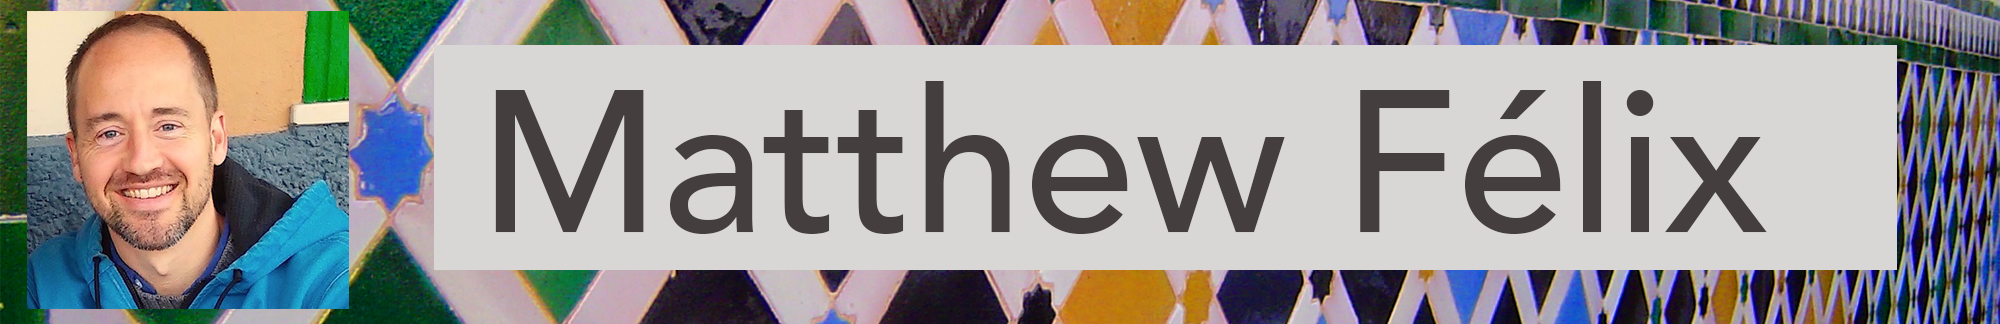 Banner for News page for novelist, travel writer, and podcast producer and host author Matthew Félix.